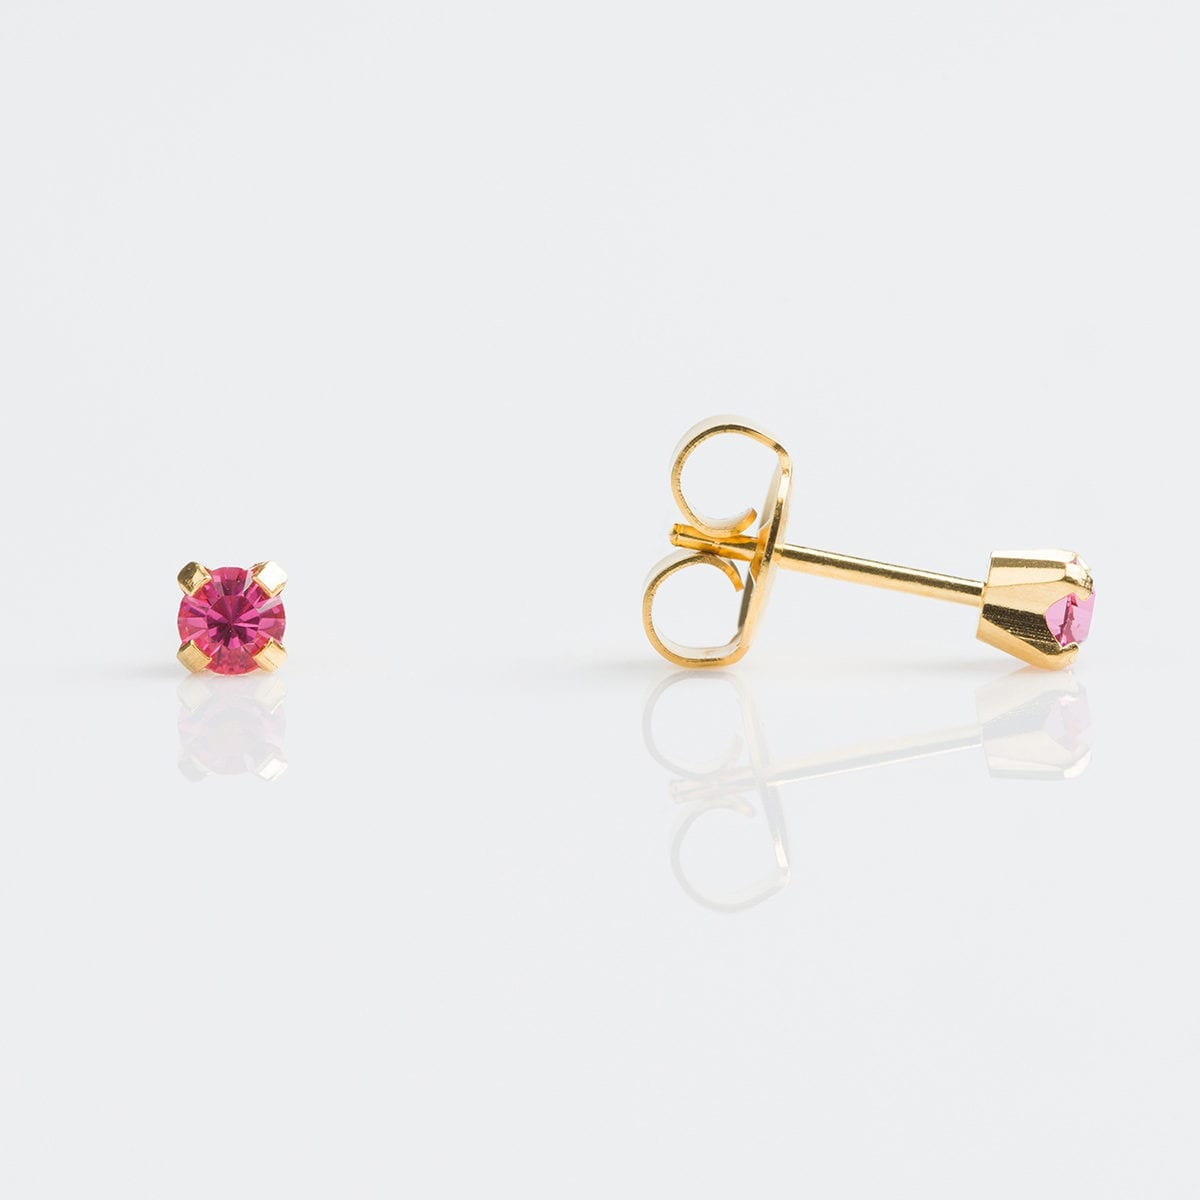 tiny-tips-earrings-october-rose